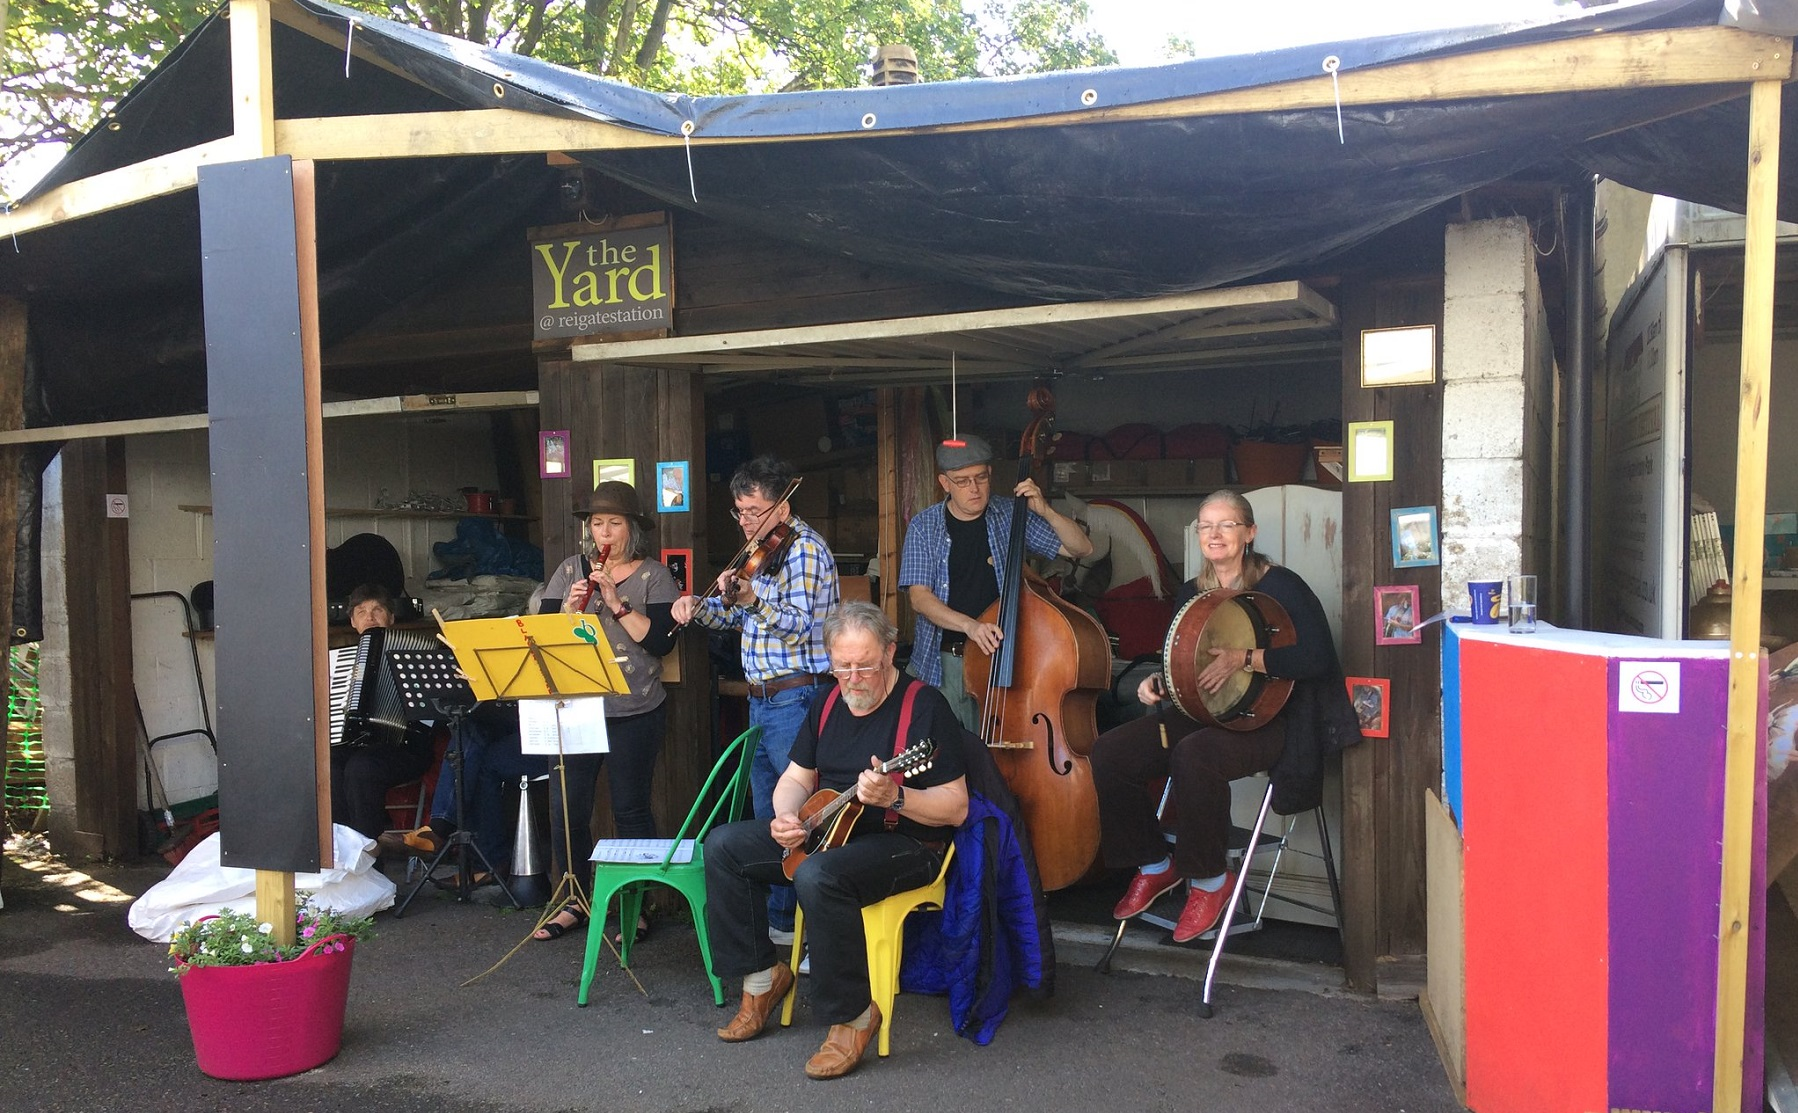 Music, art and more at The Yard in Reigate Art Fest